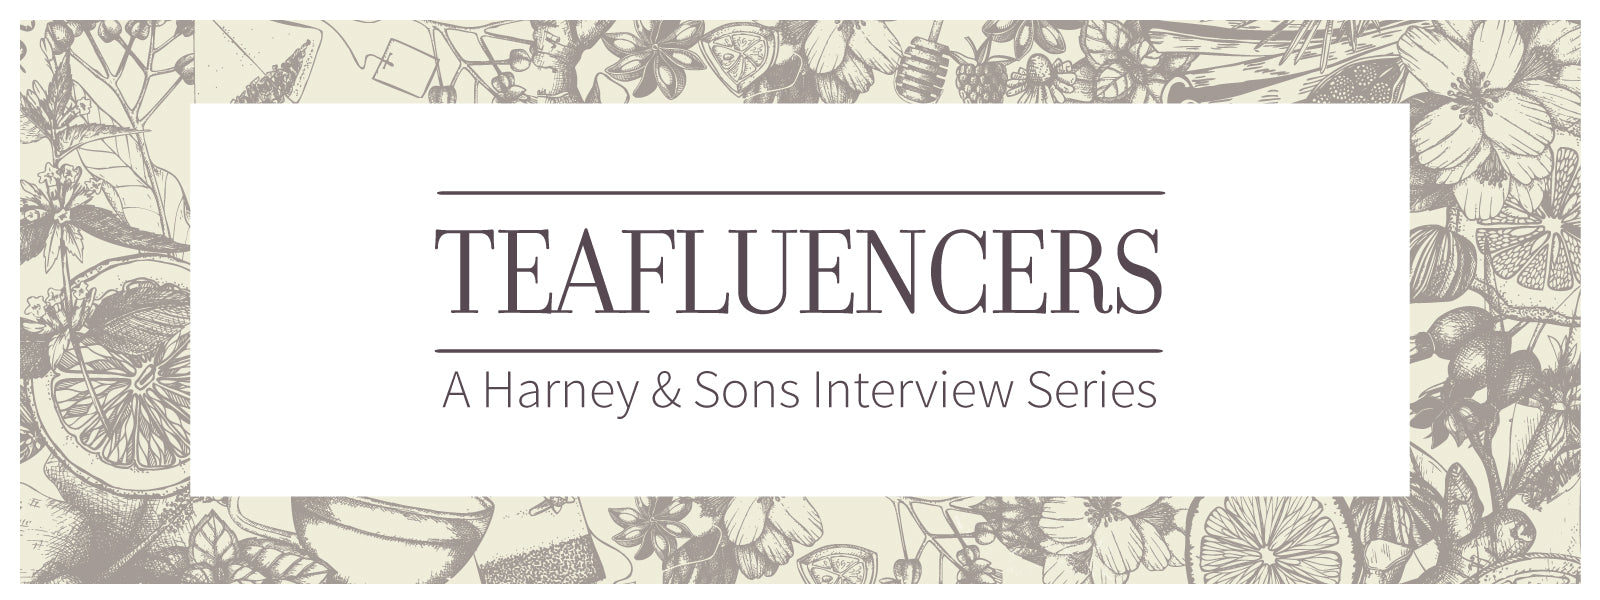 Harney & Sons Teafluencer, Buyer Elvira Cardenas